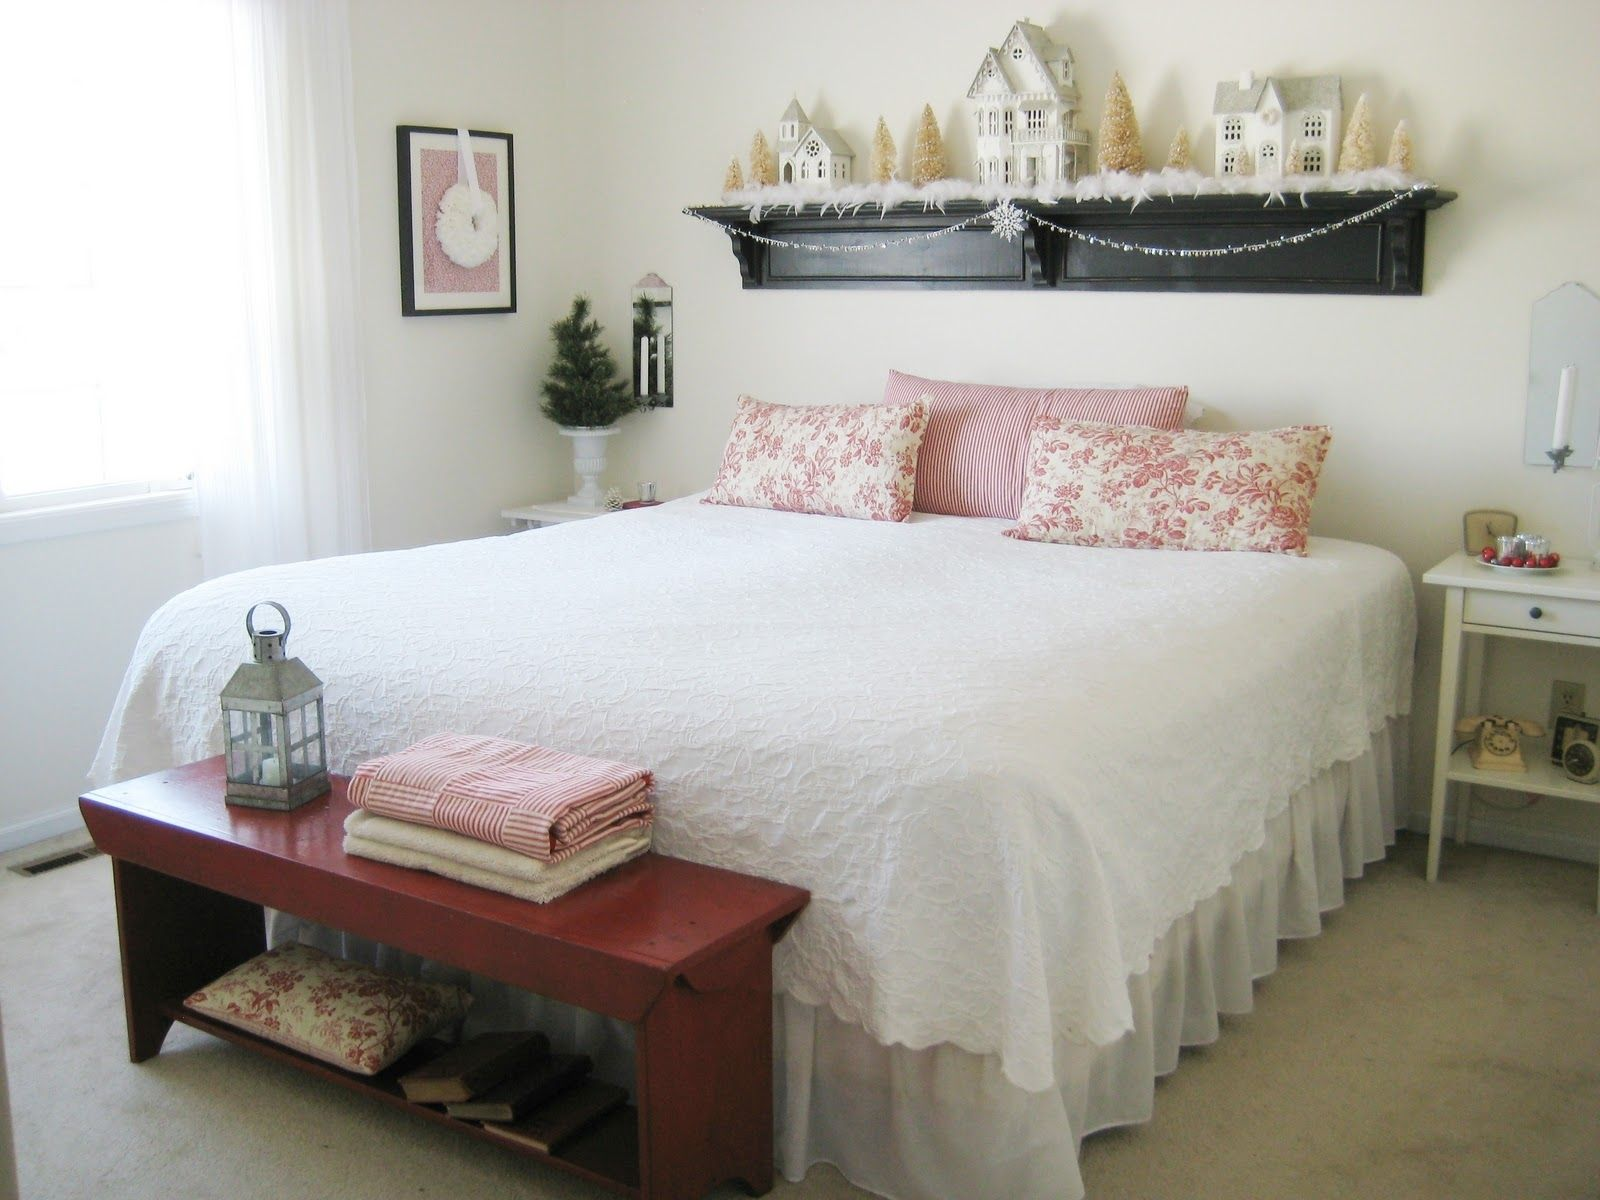 Cute How To Decorate Small Room With Queen Bed And Also Inspiration Bedroom Women Cozy Decorating Ideas